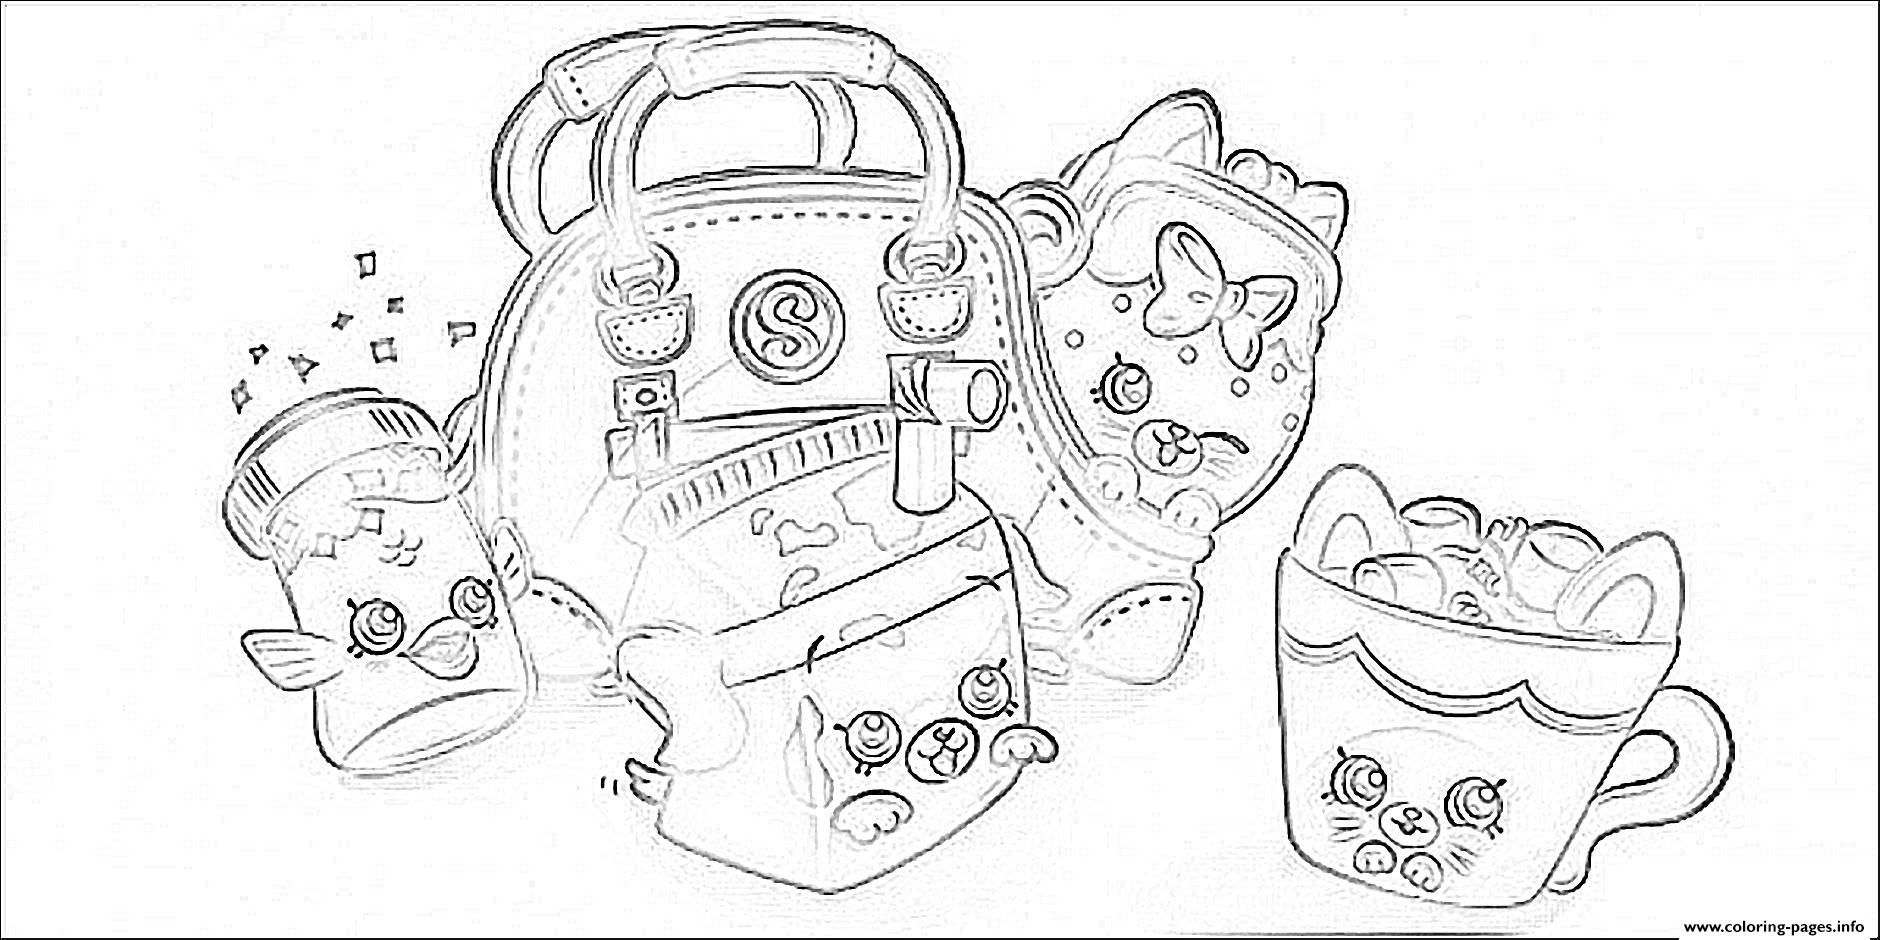 Print cute shopkins bags coloring pages Shopkins colouring pages Disney princess coloring